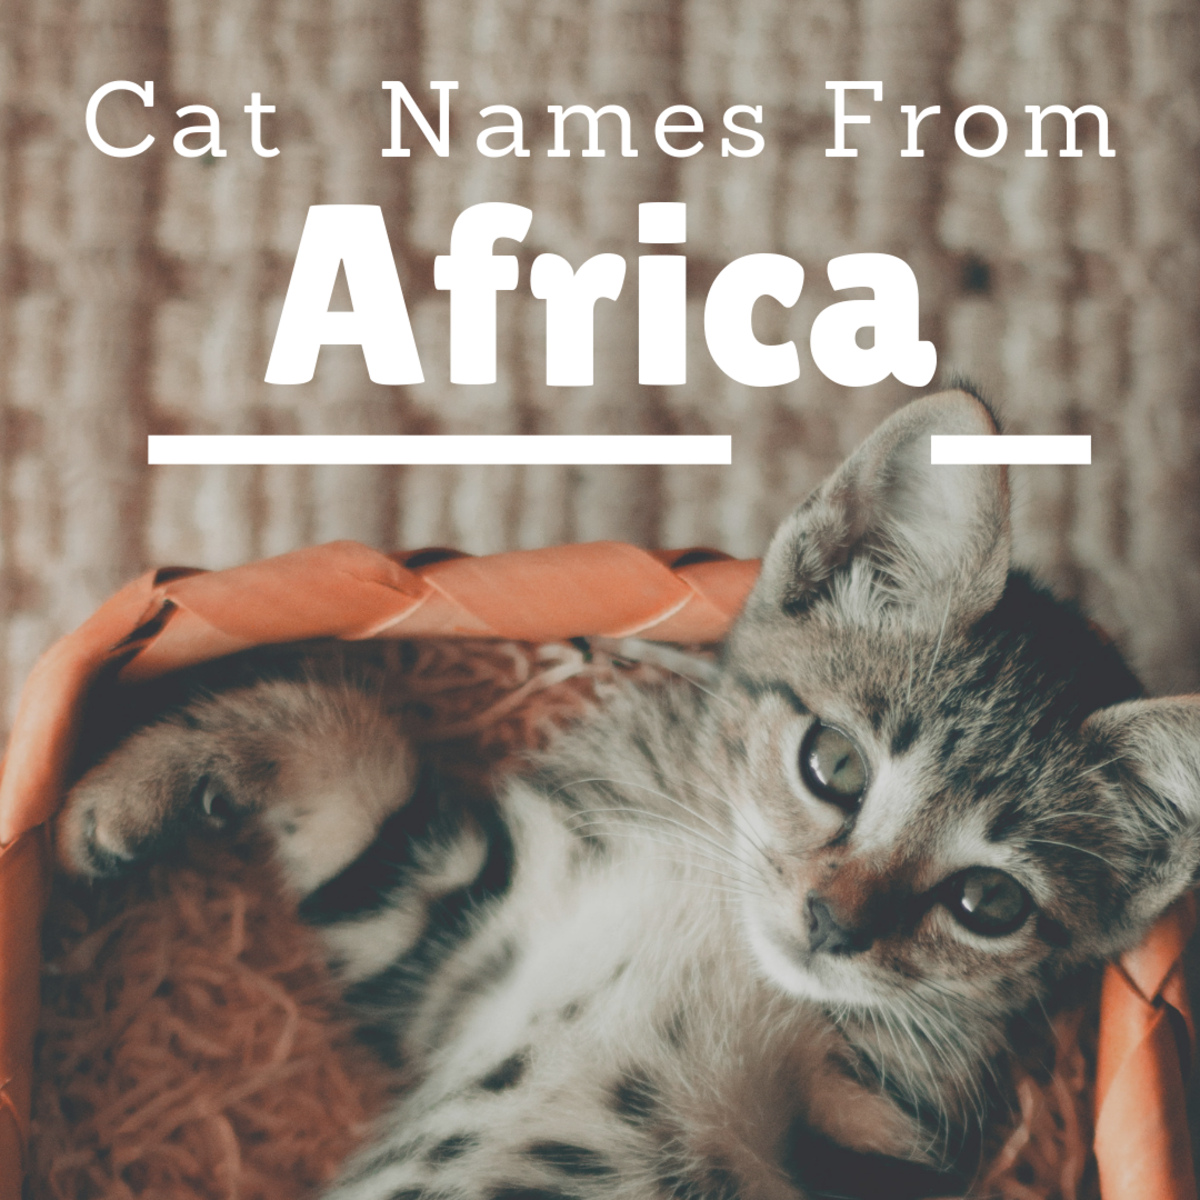 20 Awesome Cat Names From Africa